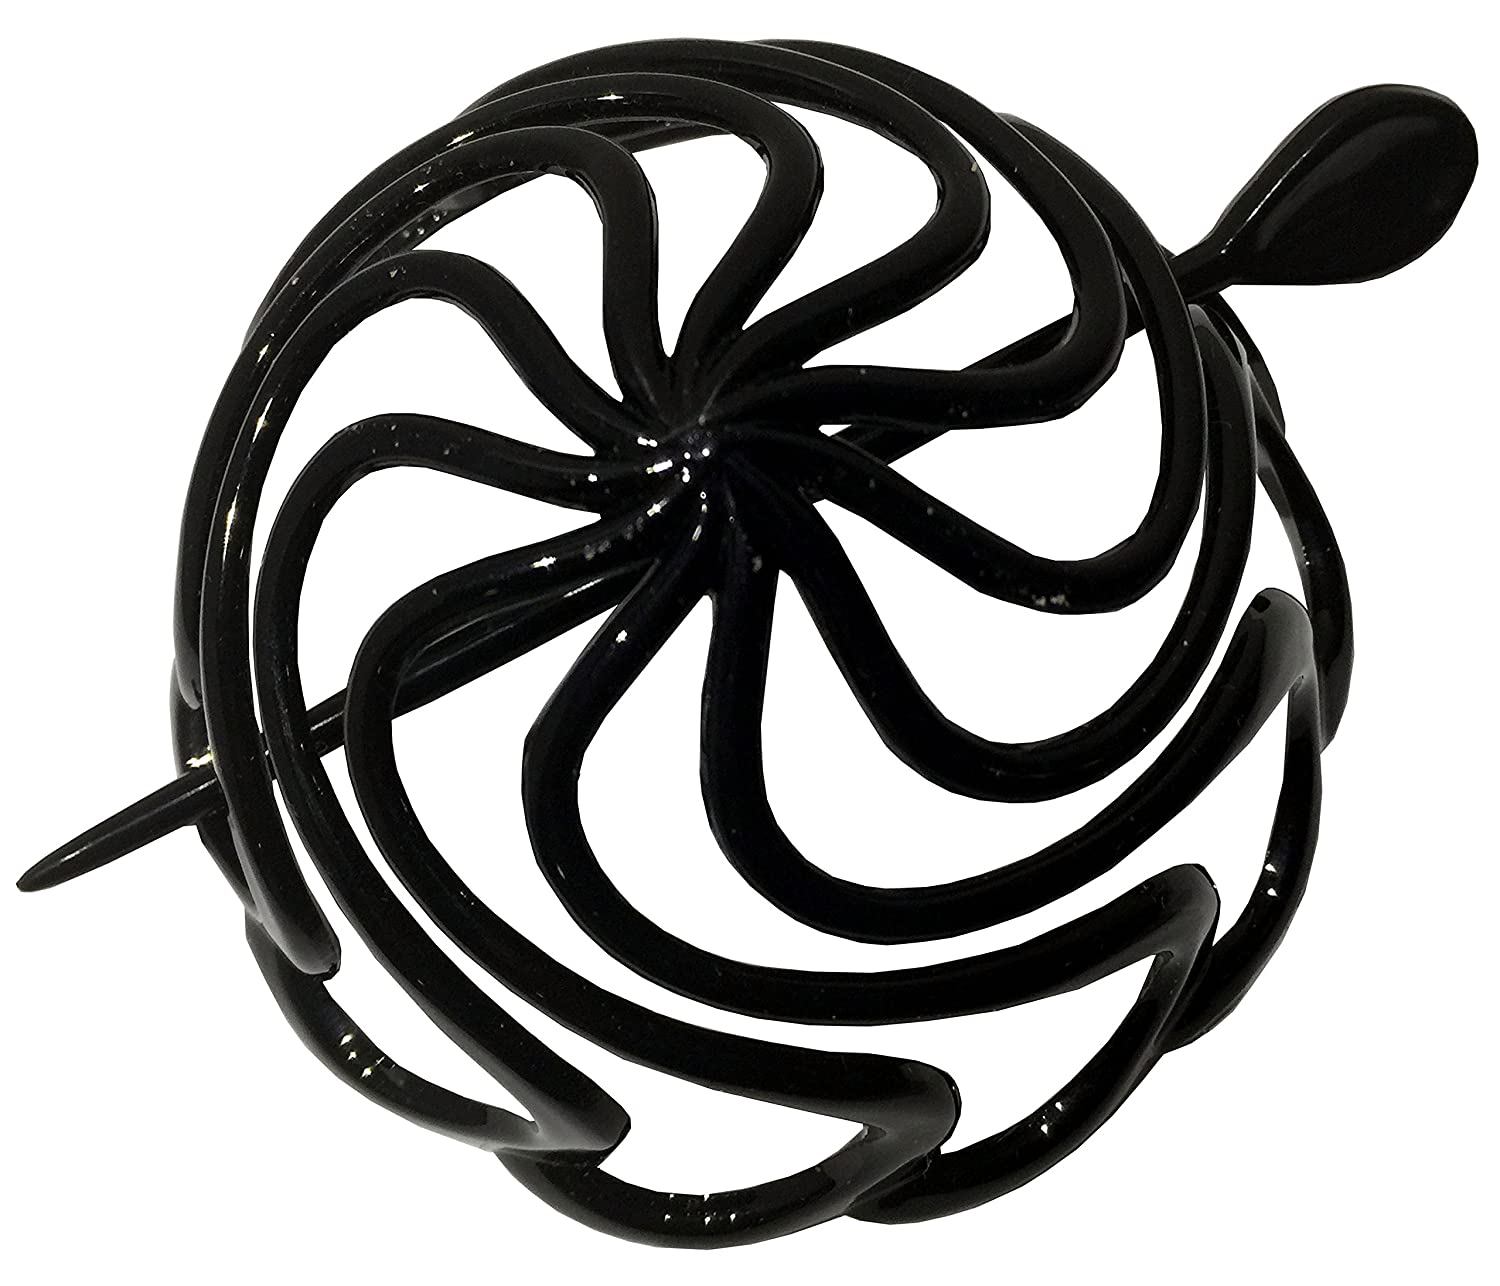 Parcelona French Radial Medium Shell Celluloid Hair Slider Bun Cover with stick